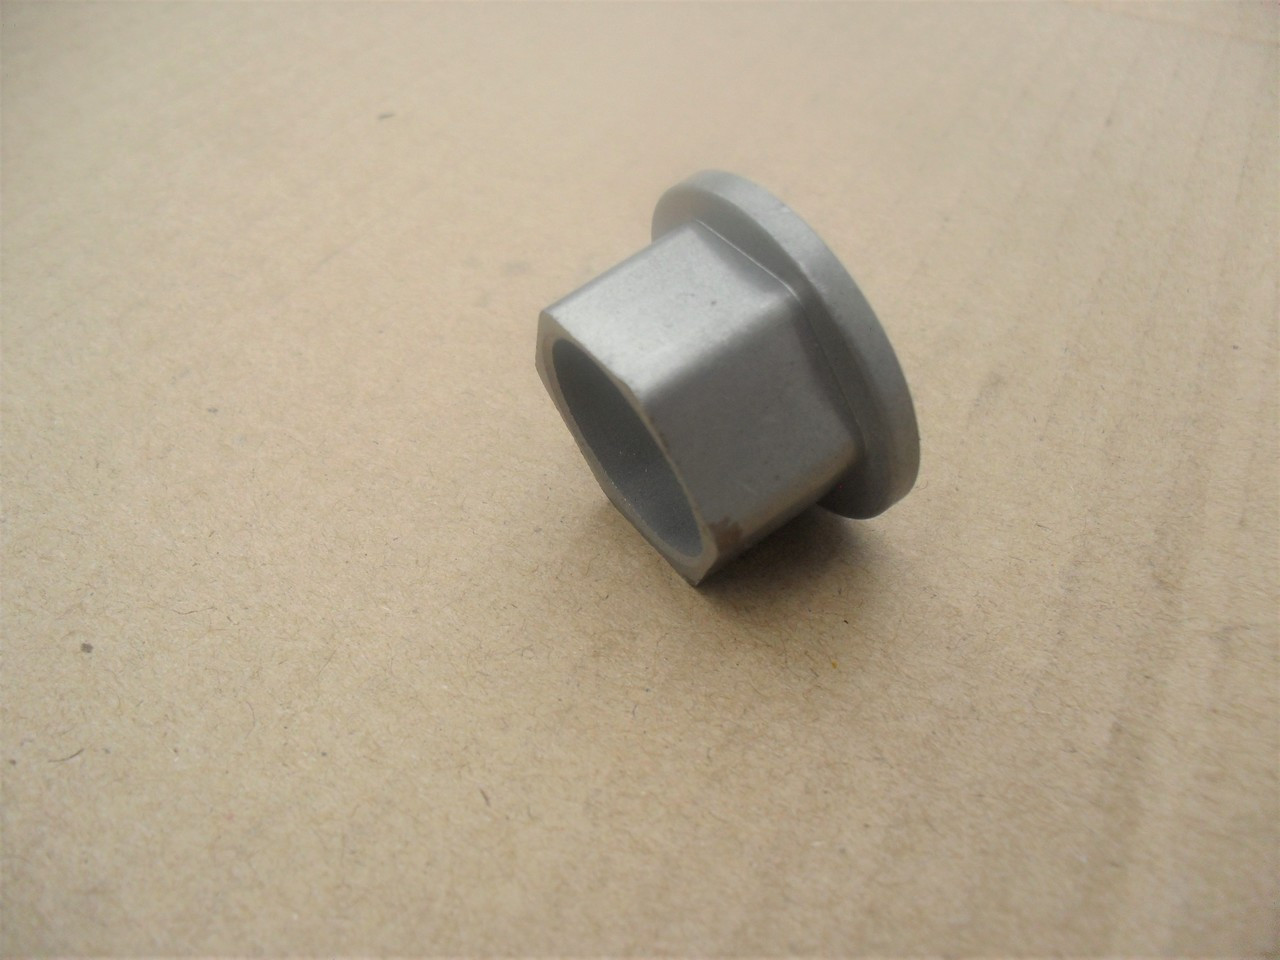 Flange Bushing Bearing for Gravely ZT, GLT548H, 815006, 834034, 836011, 834035, 987103, 987107, Mower, Snowblower, snowthrower, snow blower thrower